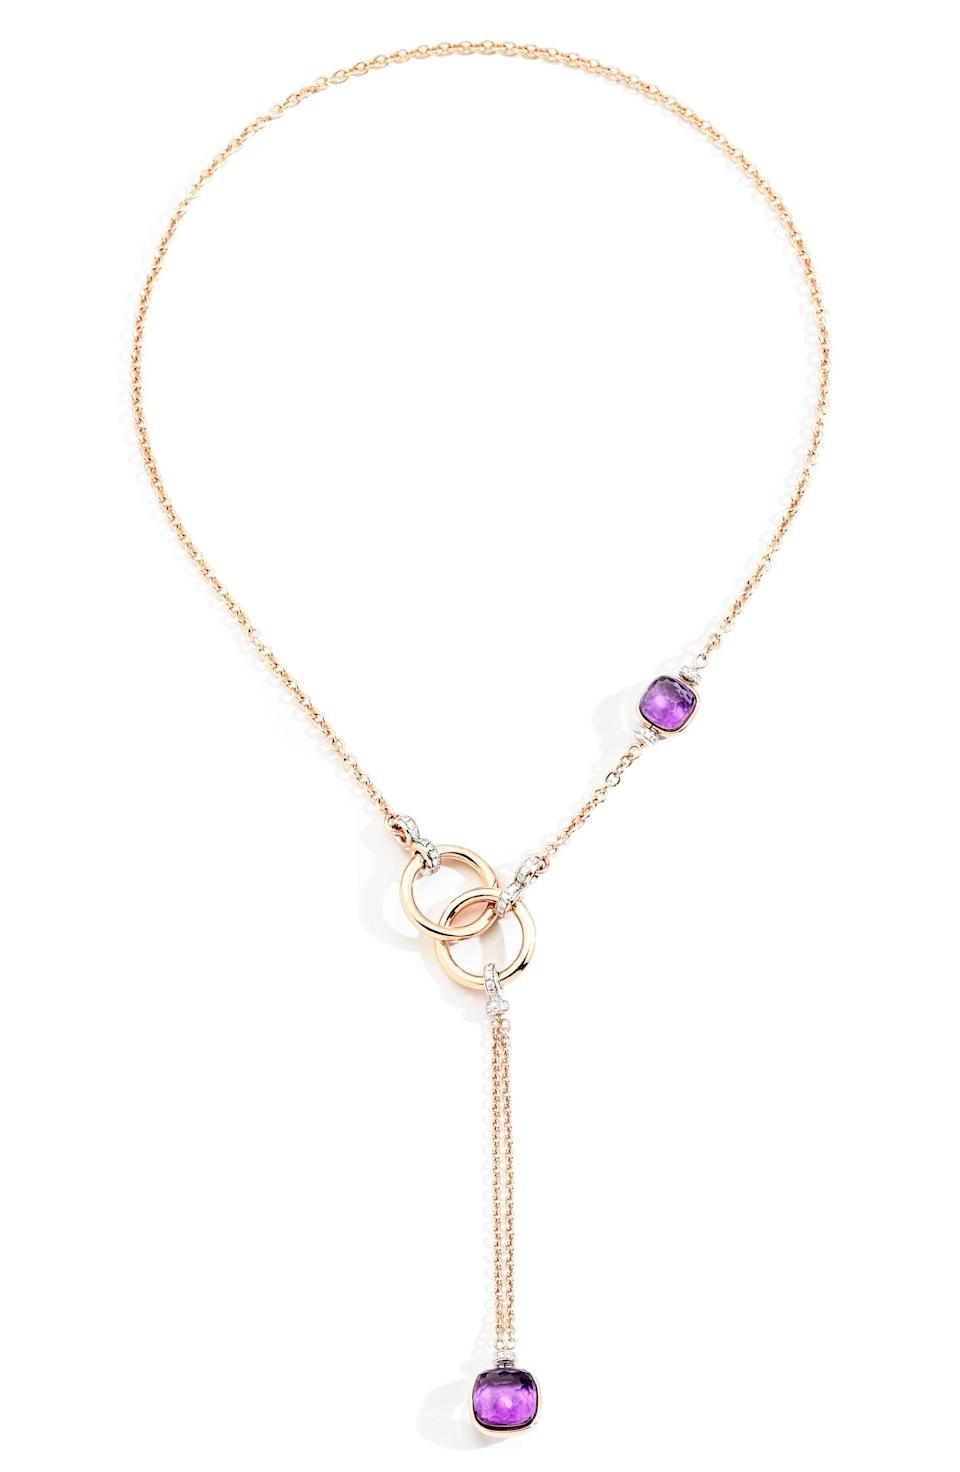 """<p><strong>Pomellato</strong></p><p>nordstrom.com</p><p><strong>$12500.00</strong></p><p><a href=""""https://go.redirectingat.com?id=74968X1596630&url=https%3A%2F%2Fwww.nordstrom.com%2Fs%2Fpomellato-nudo-amethyst-lariat-necklace%2F5901143&sref=https%3A%2F%2Fwww.townandcountrymag.com%2Fstyle%2Fjewelry-and-watches%2Fg37368162%2Ffine-jewelry-brands-at-nordstrom%2F"""" rel=""""nofollow noopener"""" target=""""_blank"""" data-ylk=""""slk:Shop Now"""" class=""""link rapid-noclick-resp"""">Shop Now</a></p><p>The Italian jeweler's playful designs are known for bright pops of color with uniquely cut stones. </p>"""